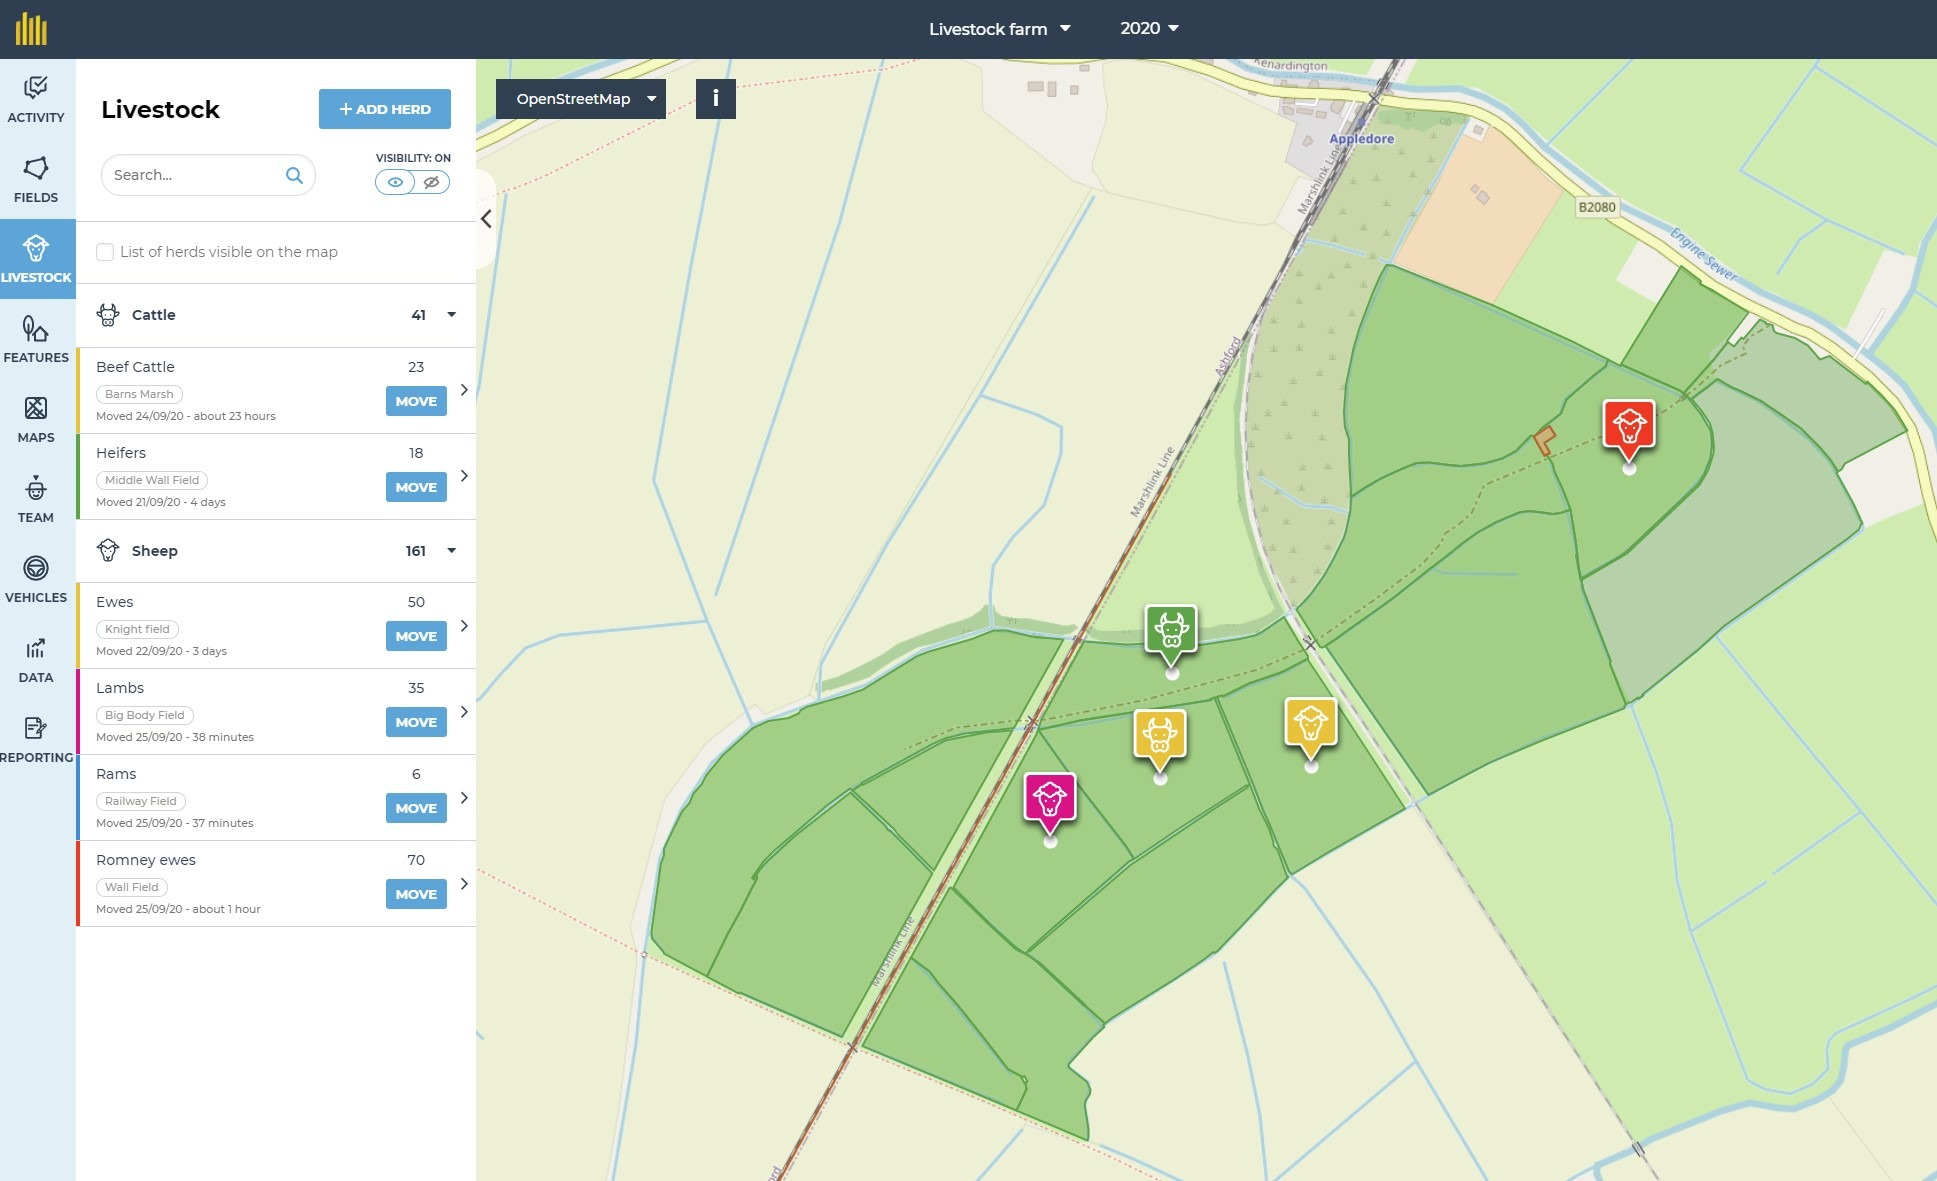 Summary of livestock on farm with total animals and their location on map for desktop